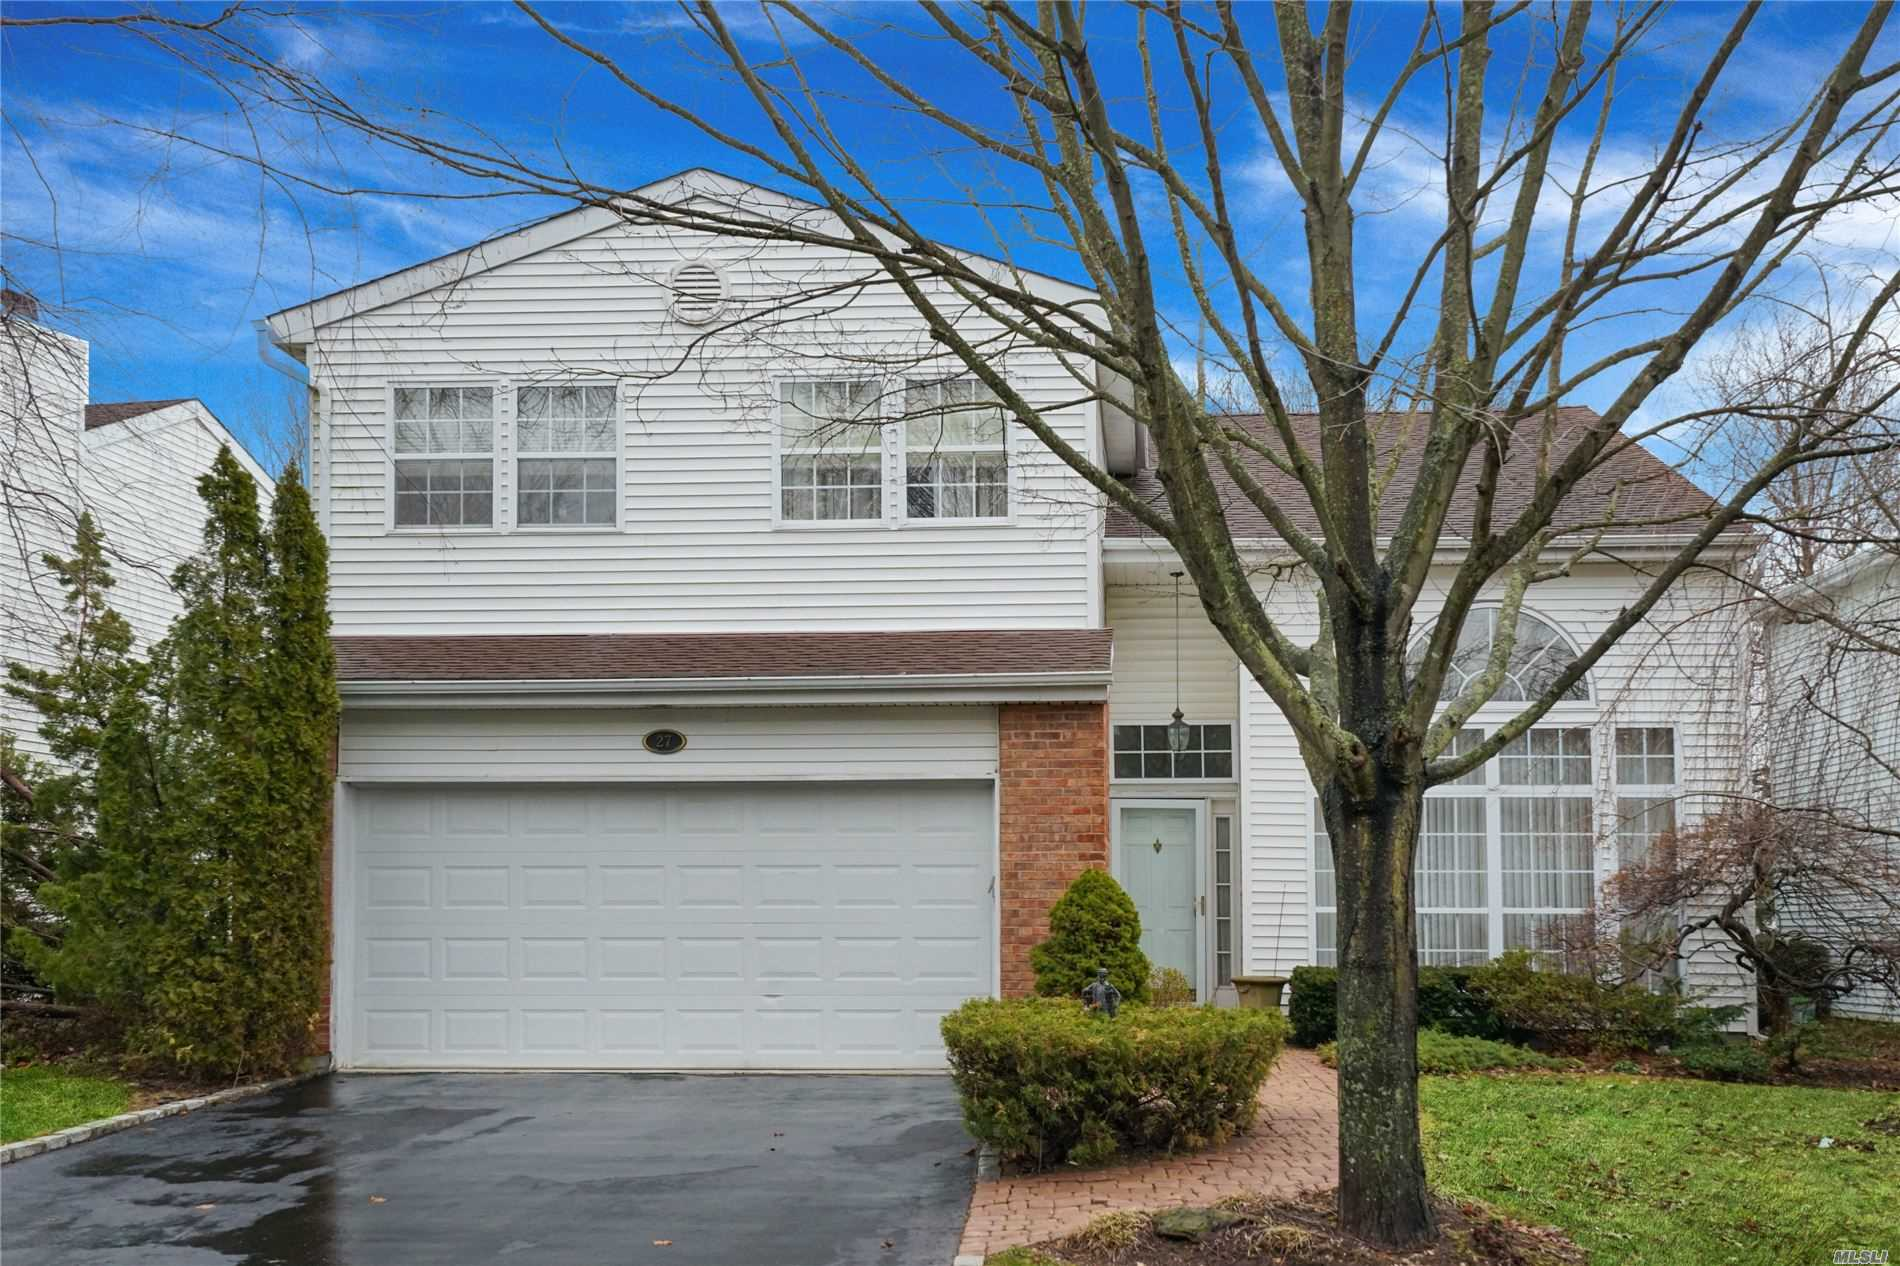 Property for sale at 27 Hamlet Drive, Commack NY 11725, Commack,  New York 11725